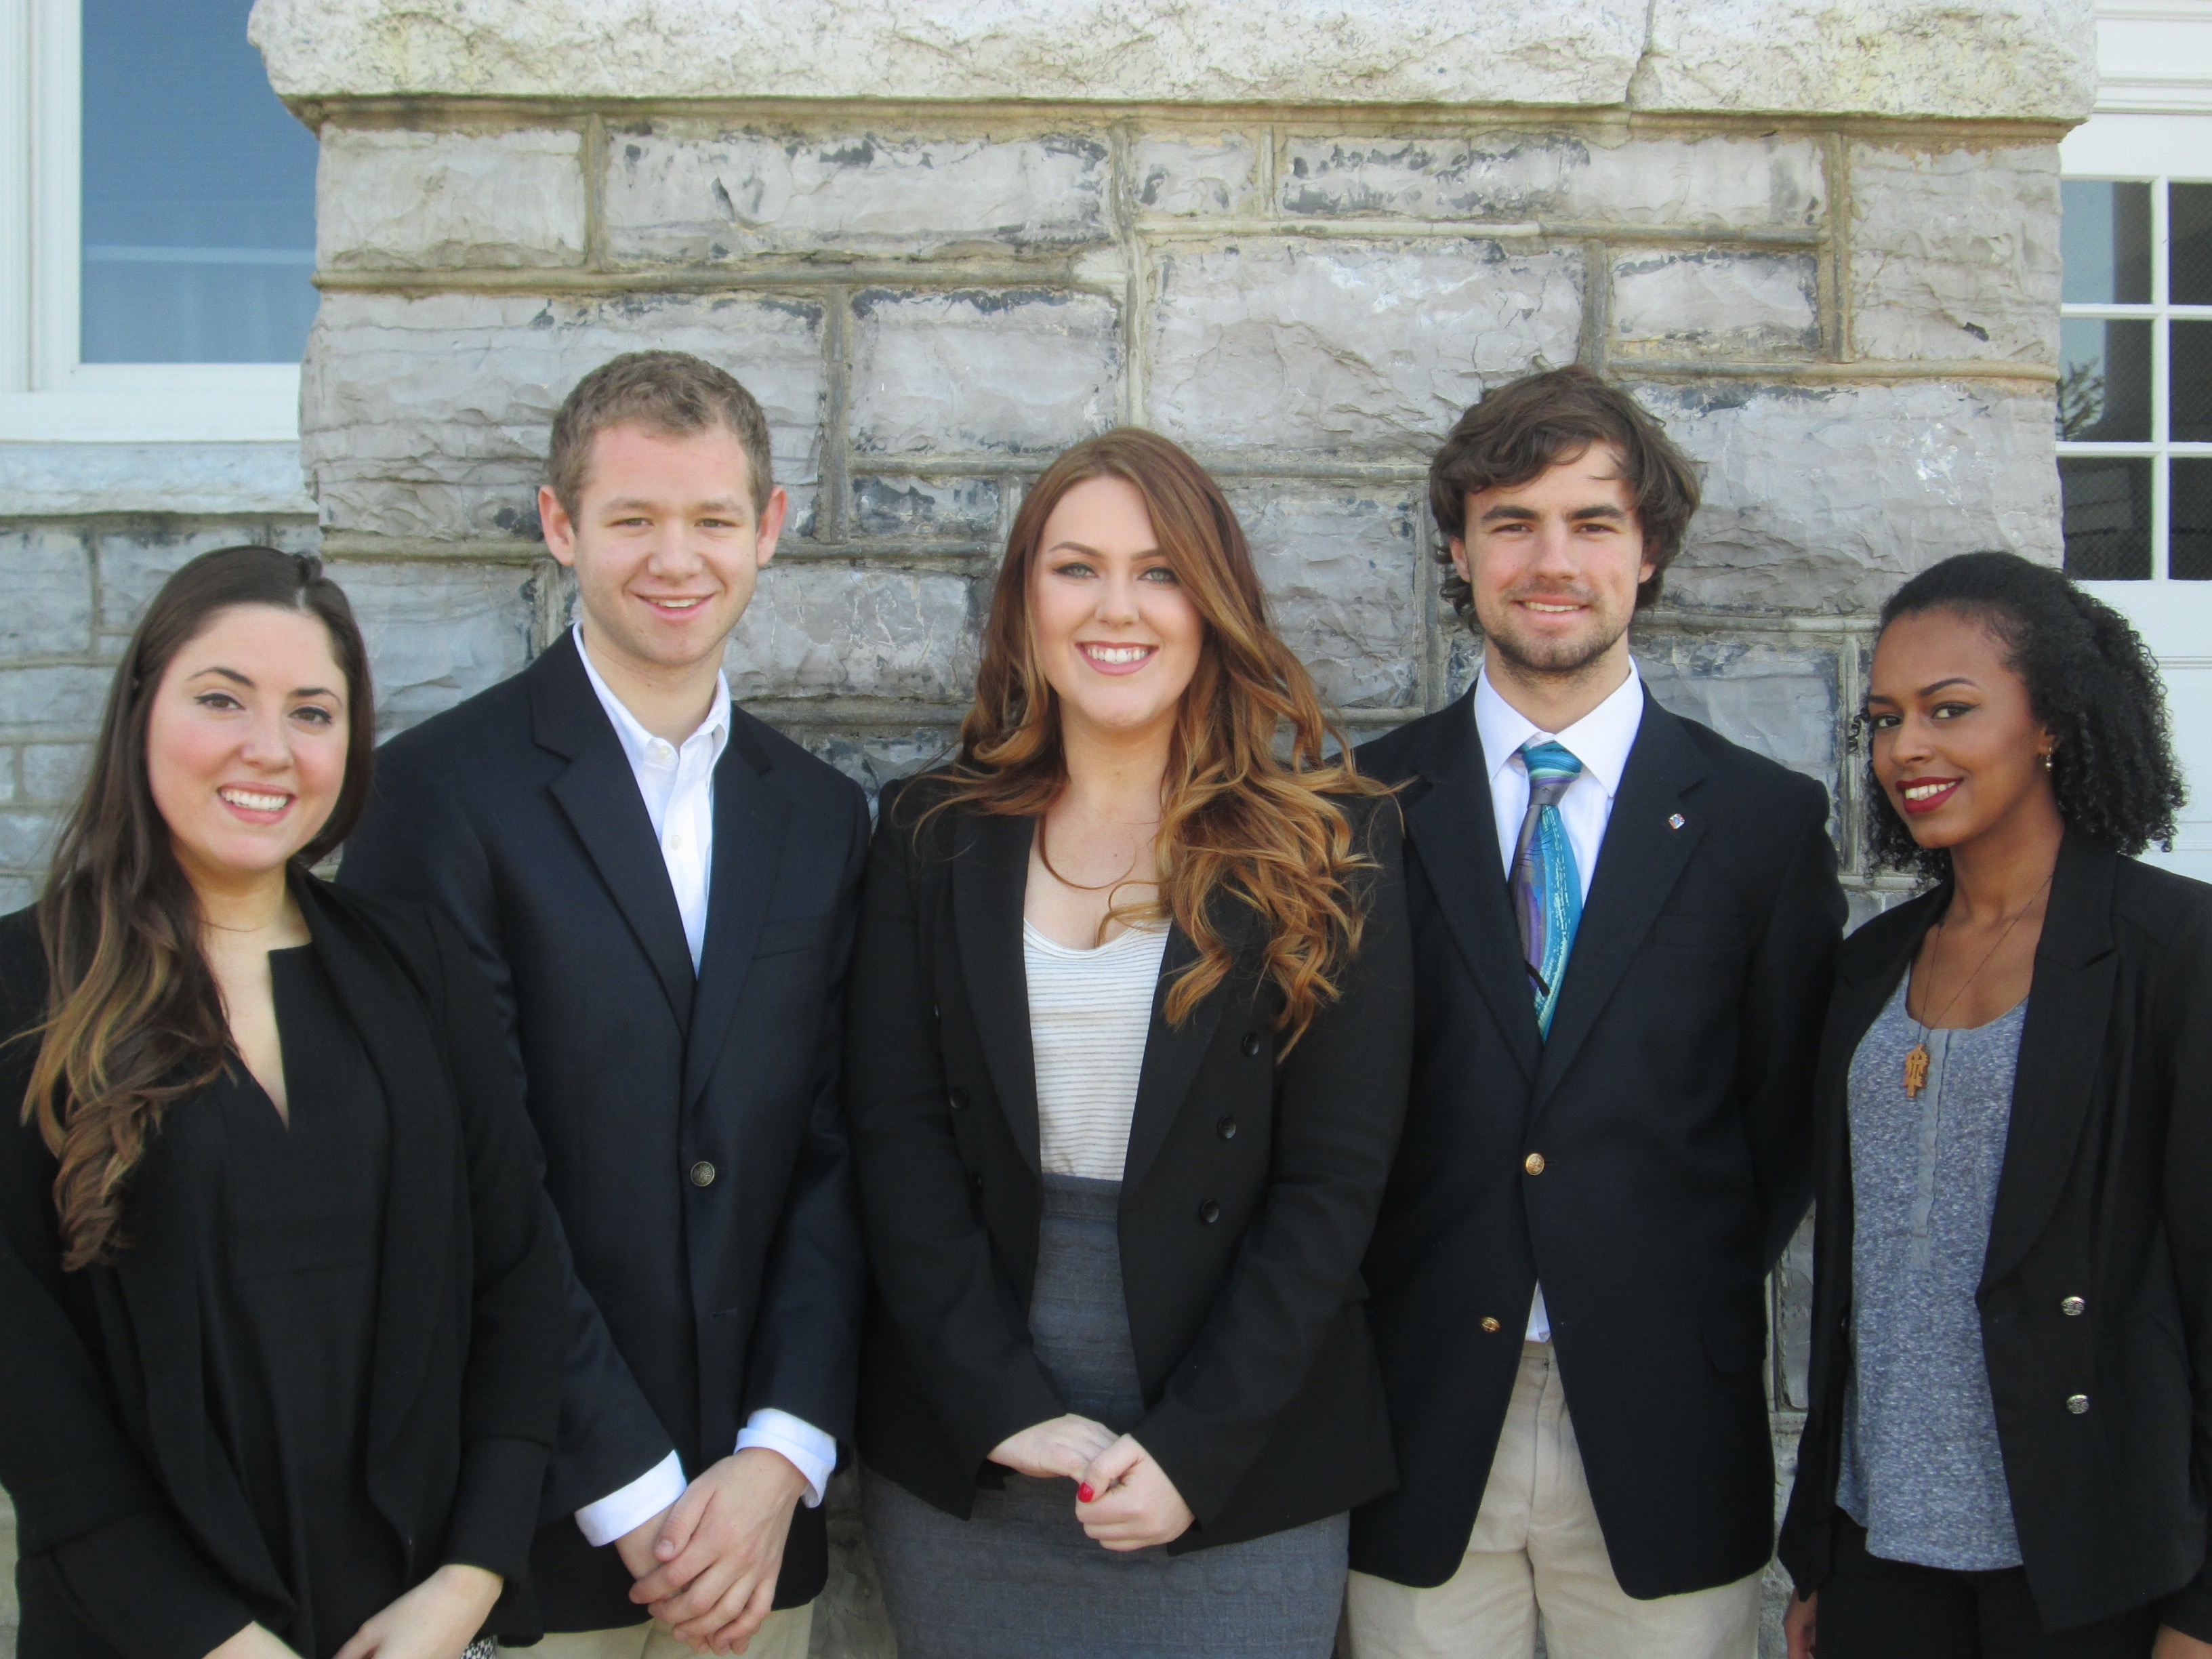 Dorothy Capasso (Team Leader), Mitchell Meyers, Allie Hammond, Joseph Scully, and Mariam Bekele - 3rd Place Bronze Winners in the Undergraduate Division of the 2015-16 Marketing EDGE Collegiate ECHO Challenge.